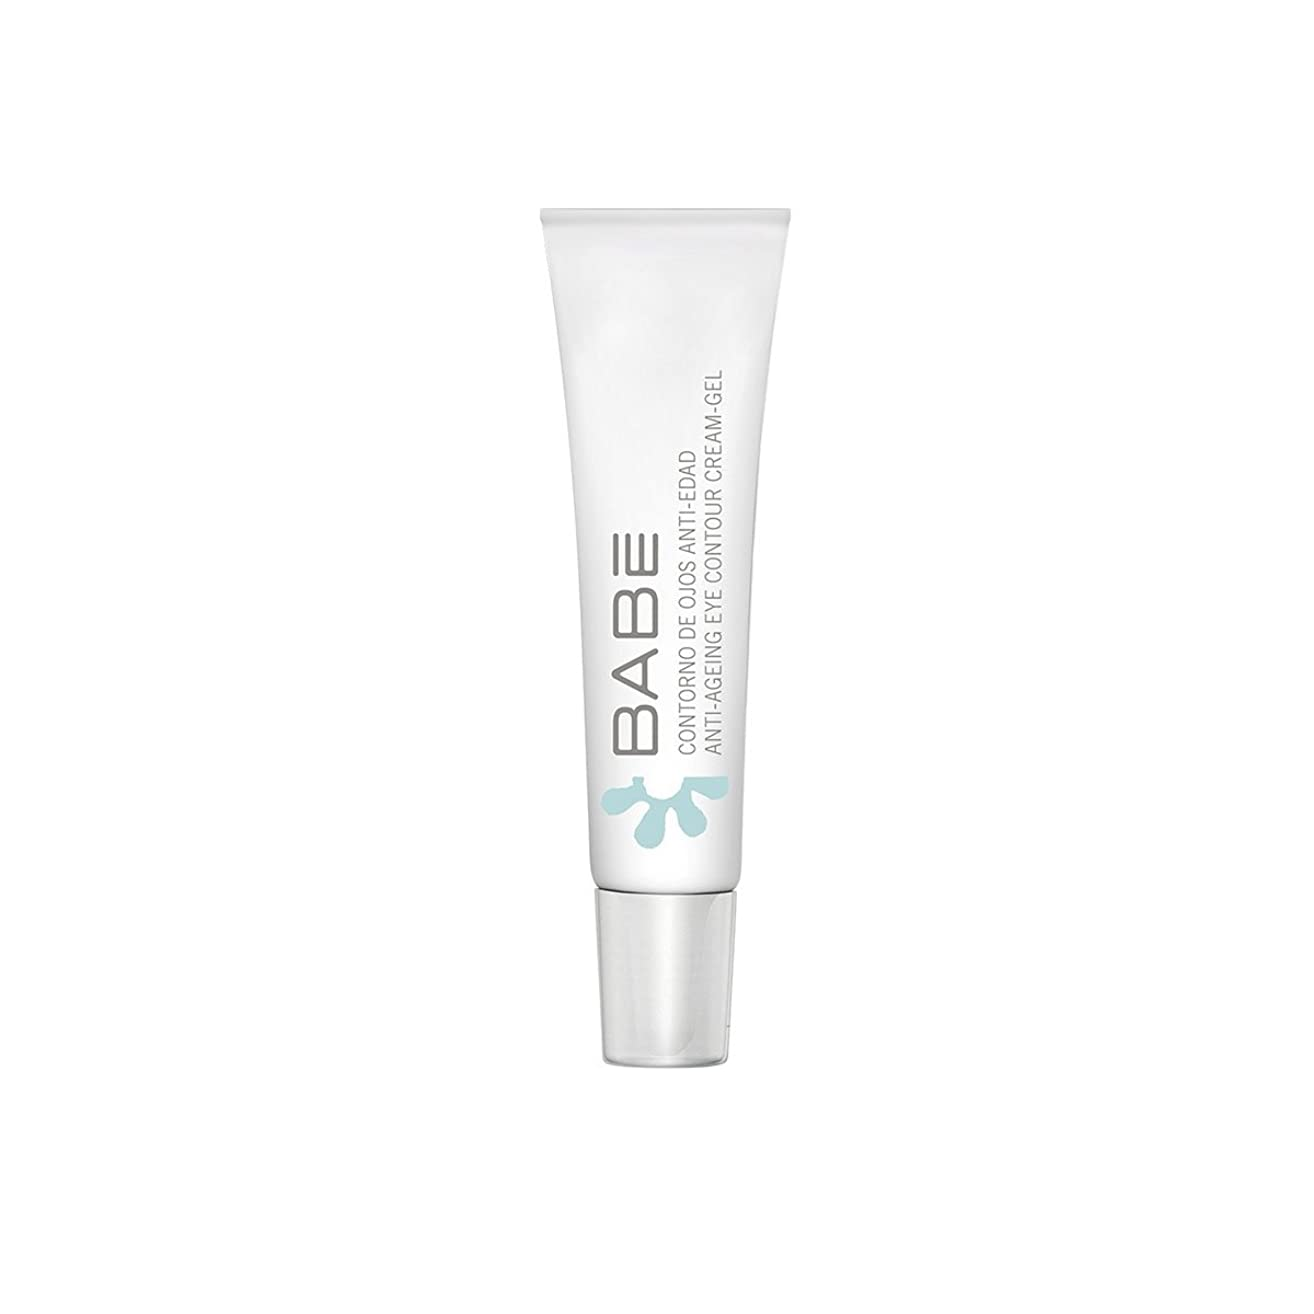 ガロン寄り添う国Babe Anti-ageing Eye Contour Cream Gel 15ml [並行輸入品]